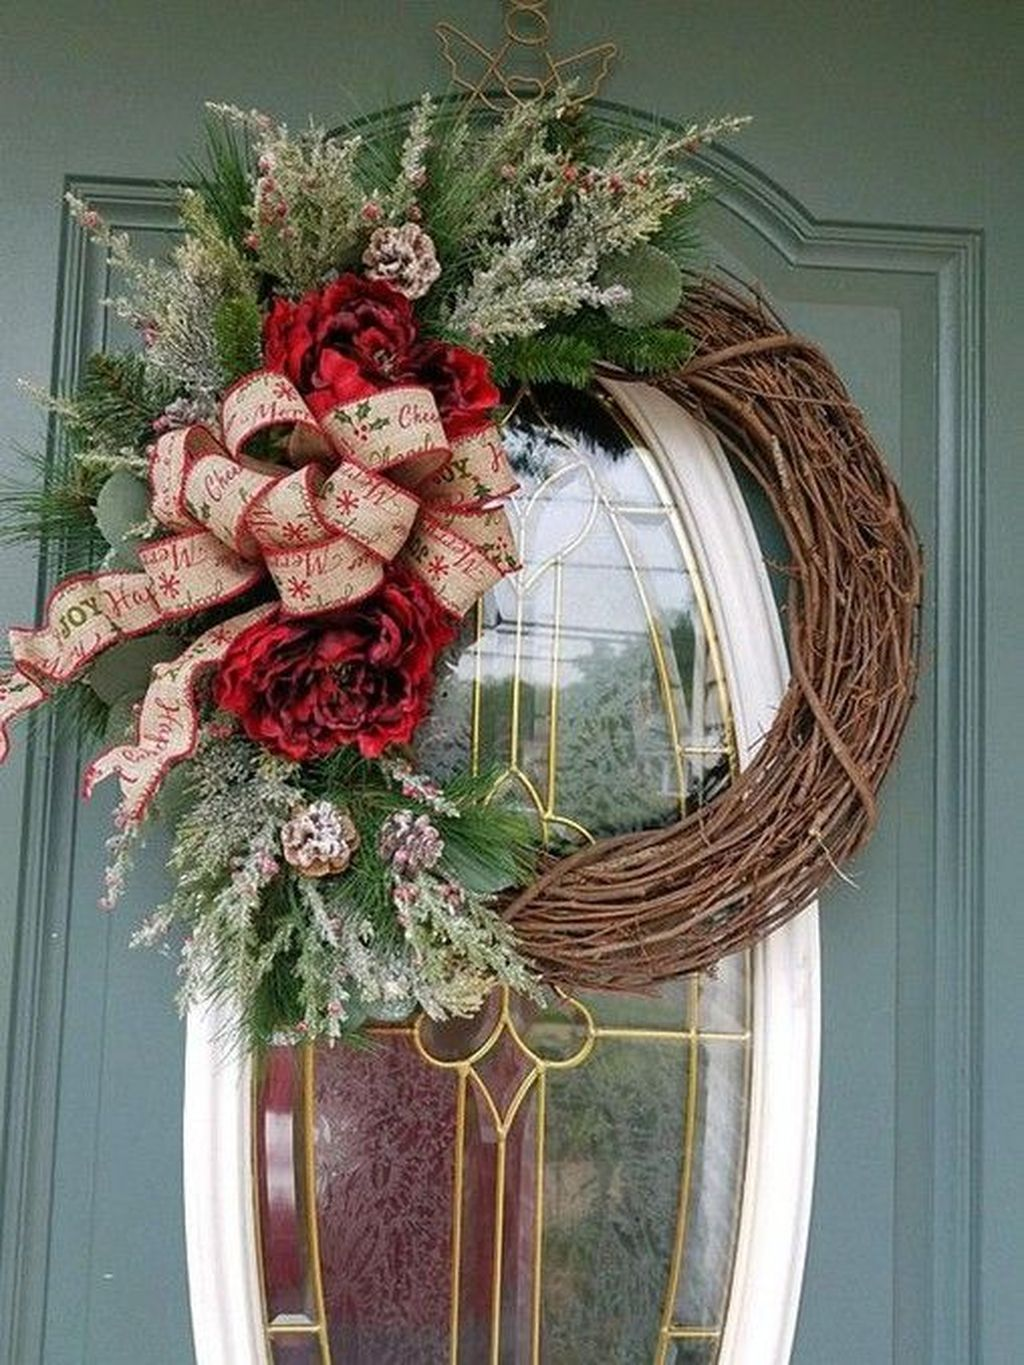 35 Gorgeous Christmas Wreaths Design Ideas For Your Front ...